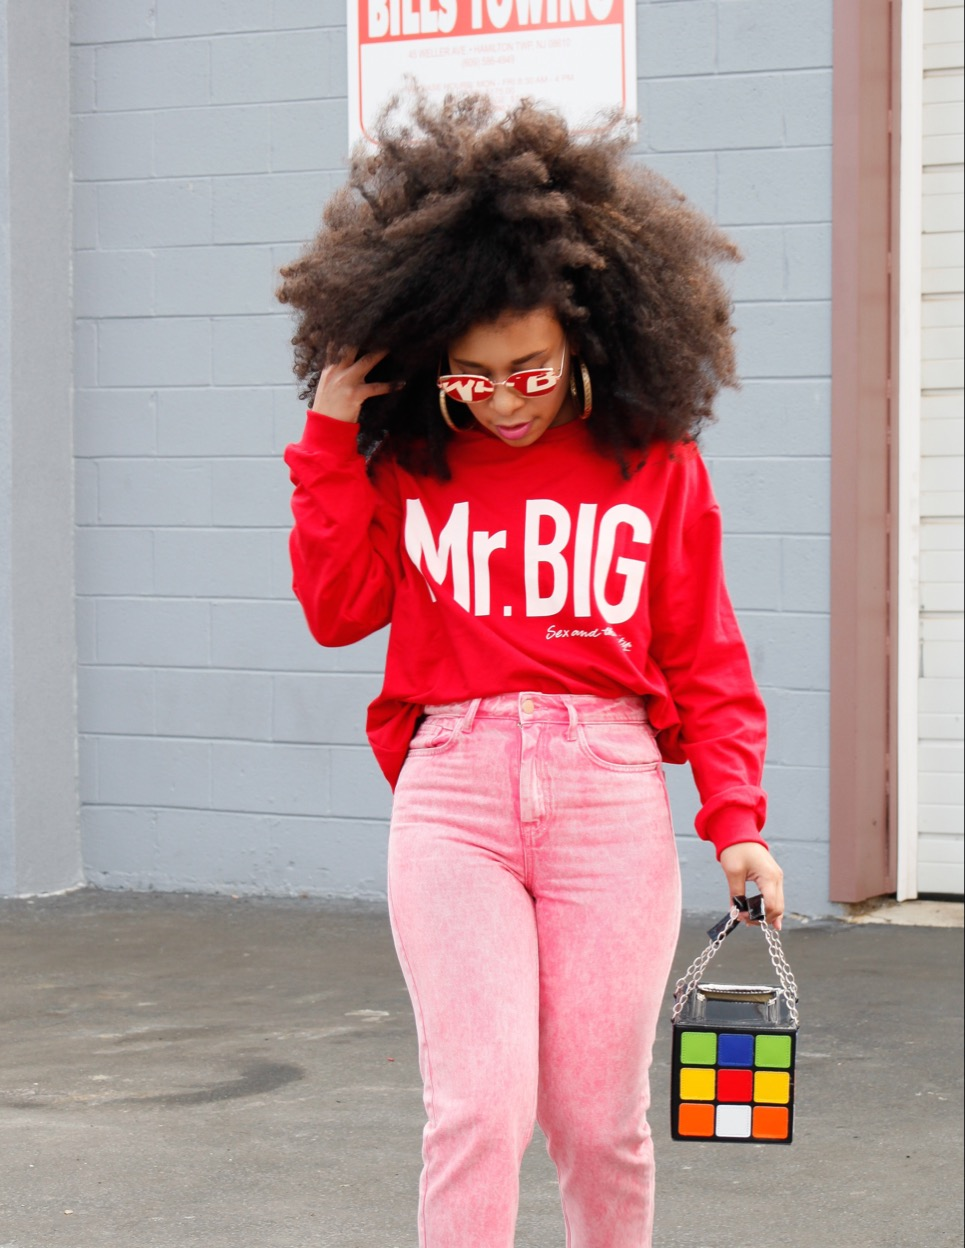 779e5fec So naturally, when I saw this Mr. BIG (Carrie's Boo) sweatshirt in Zara I  just had to get it!